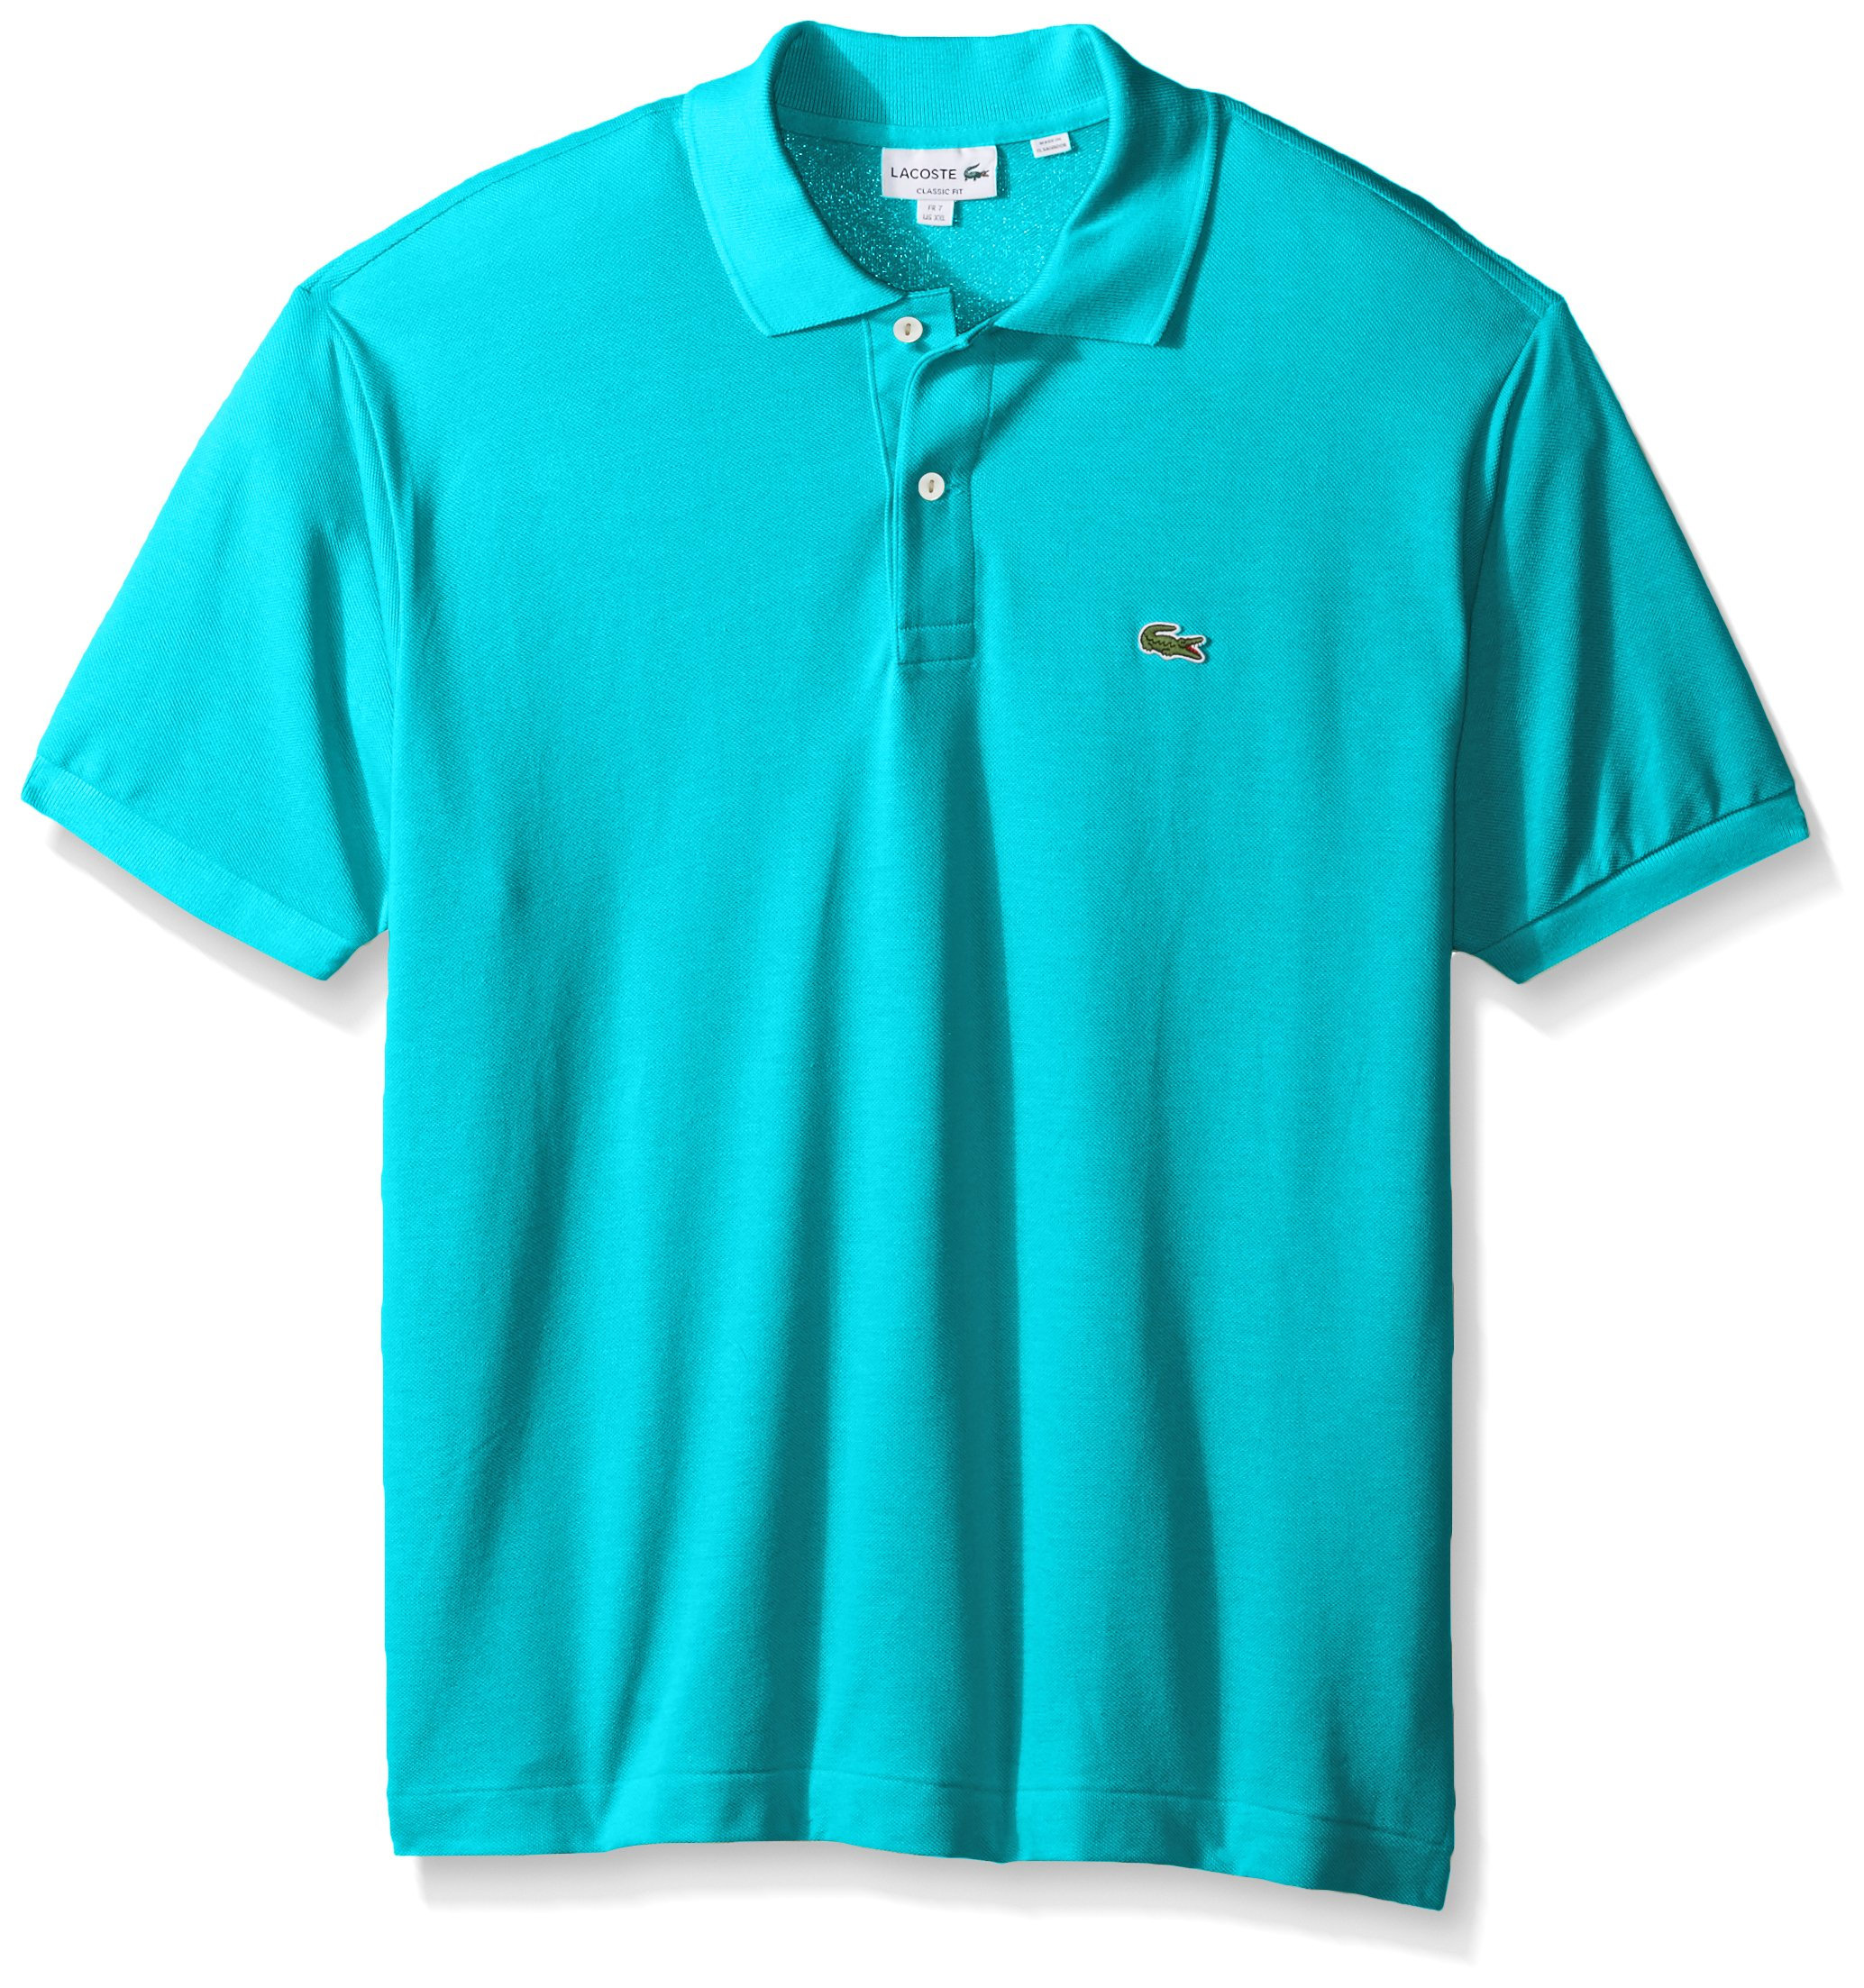 d7b5179f Galleon - Lacoste Men's Short Sleeve Pique L.12.12 Classic Fit Polo Shirt,  L1212, Atoll Small